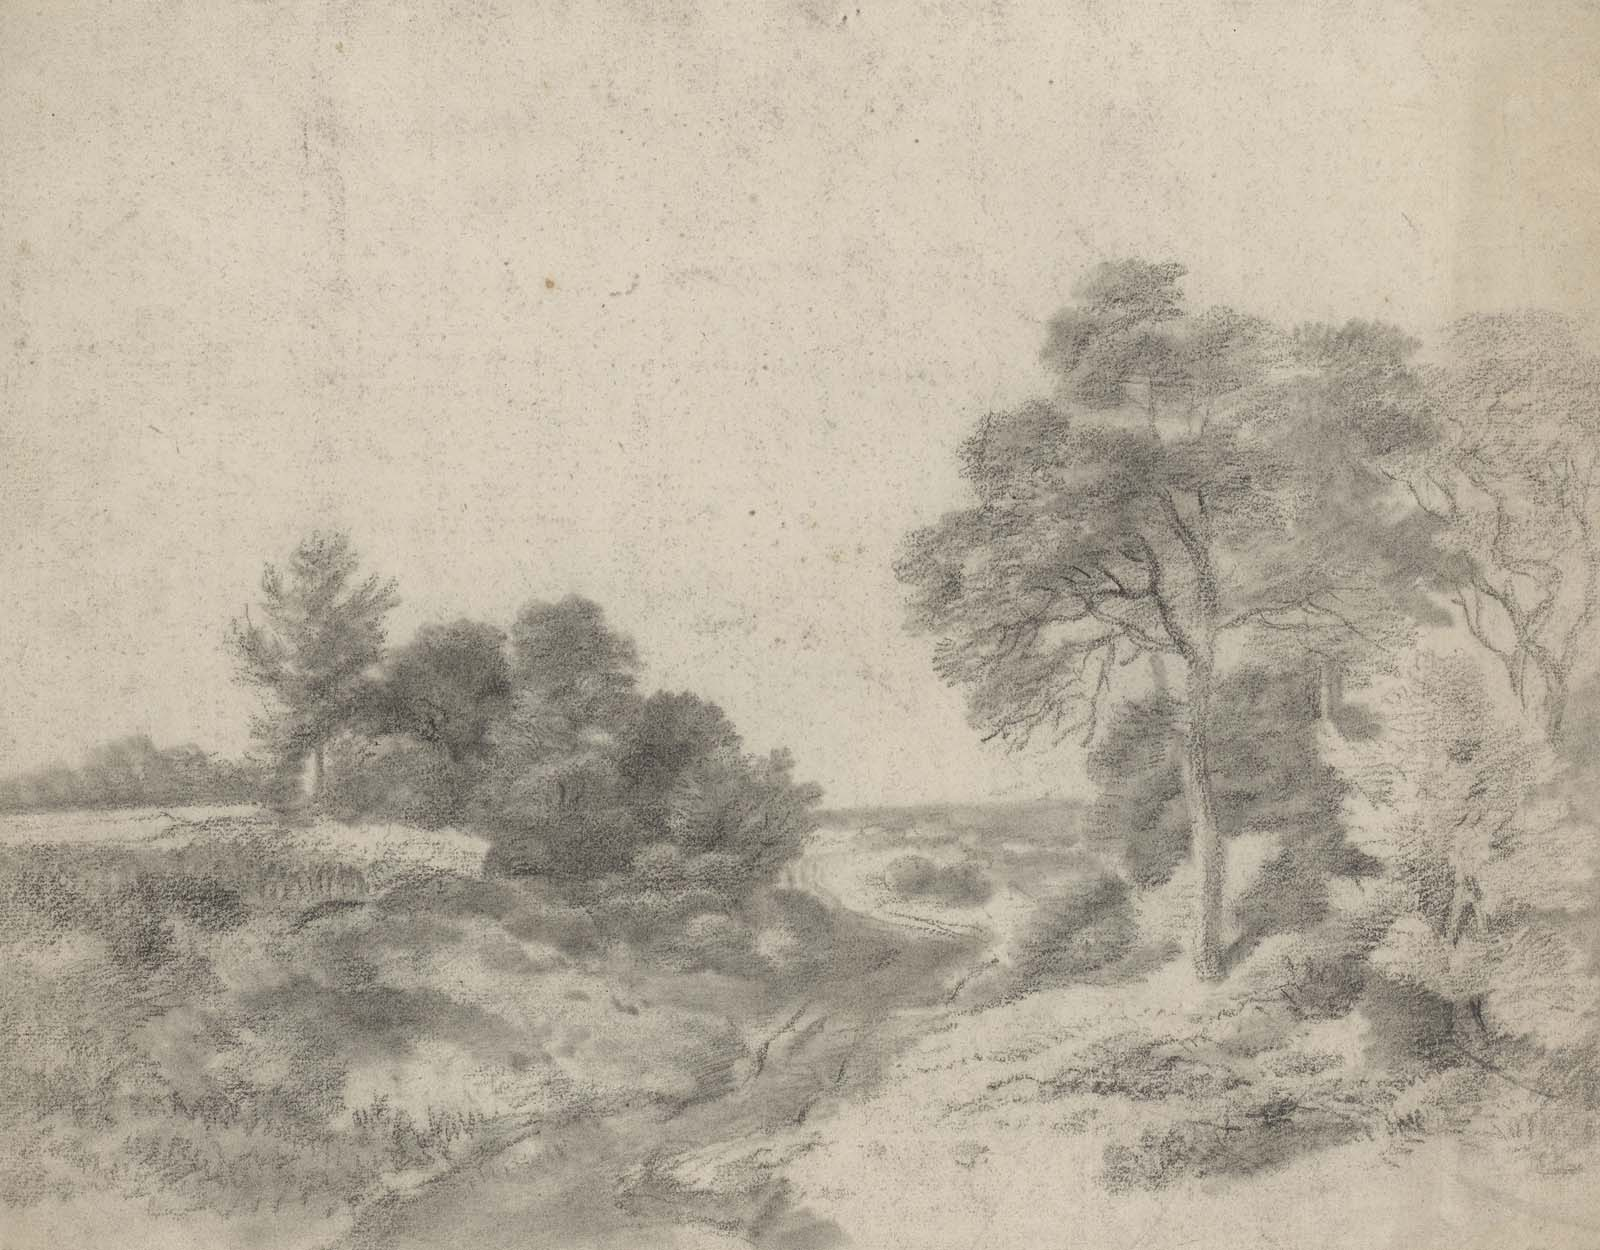 sketch of trees and meadows